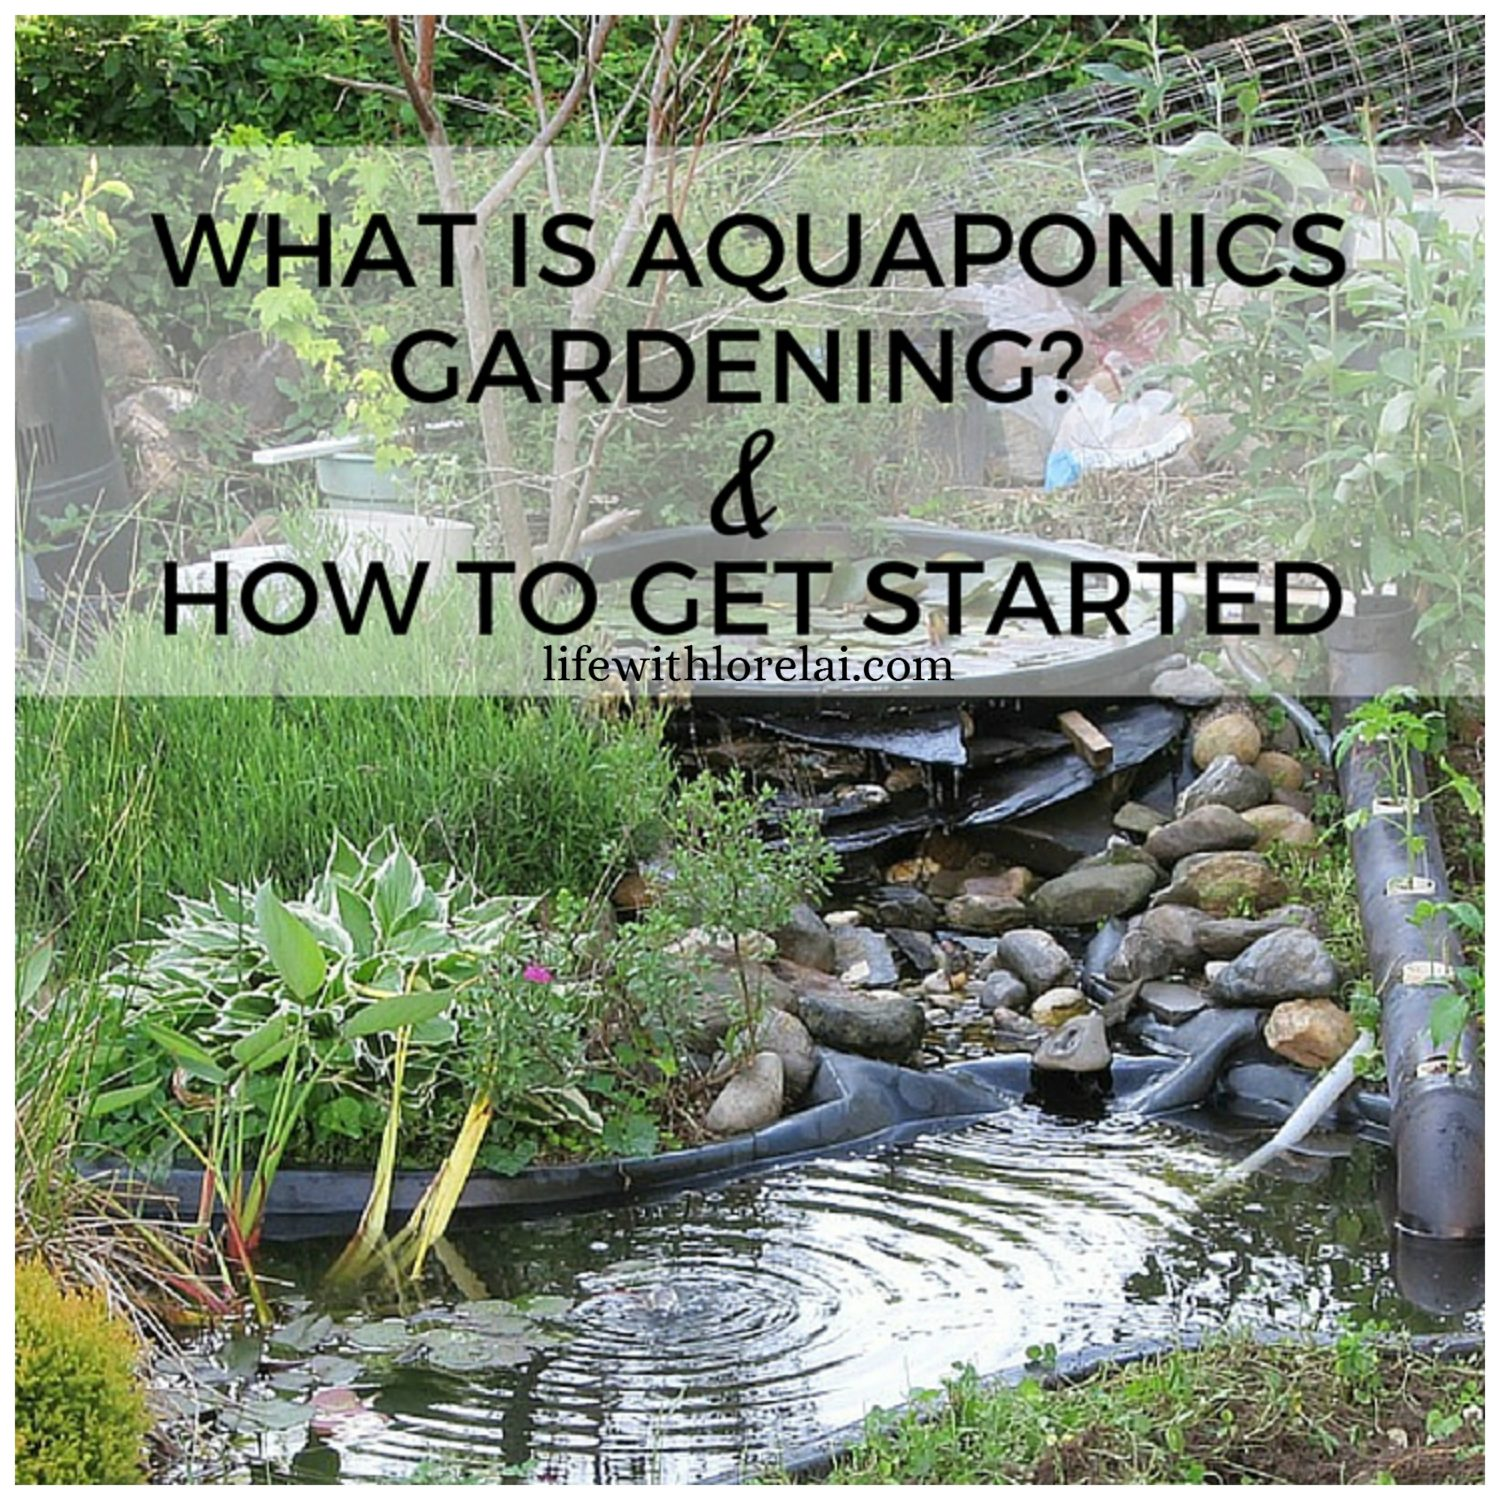 Aquaponic Gardening Create A Self Sustaining Garden Life With